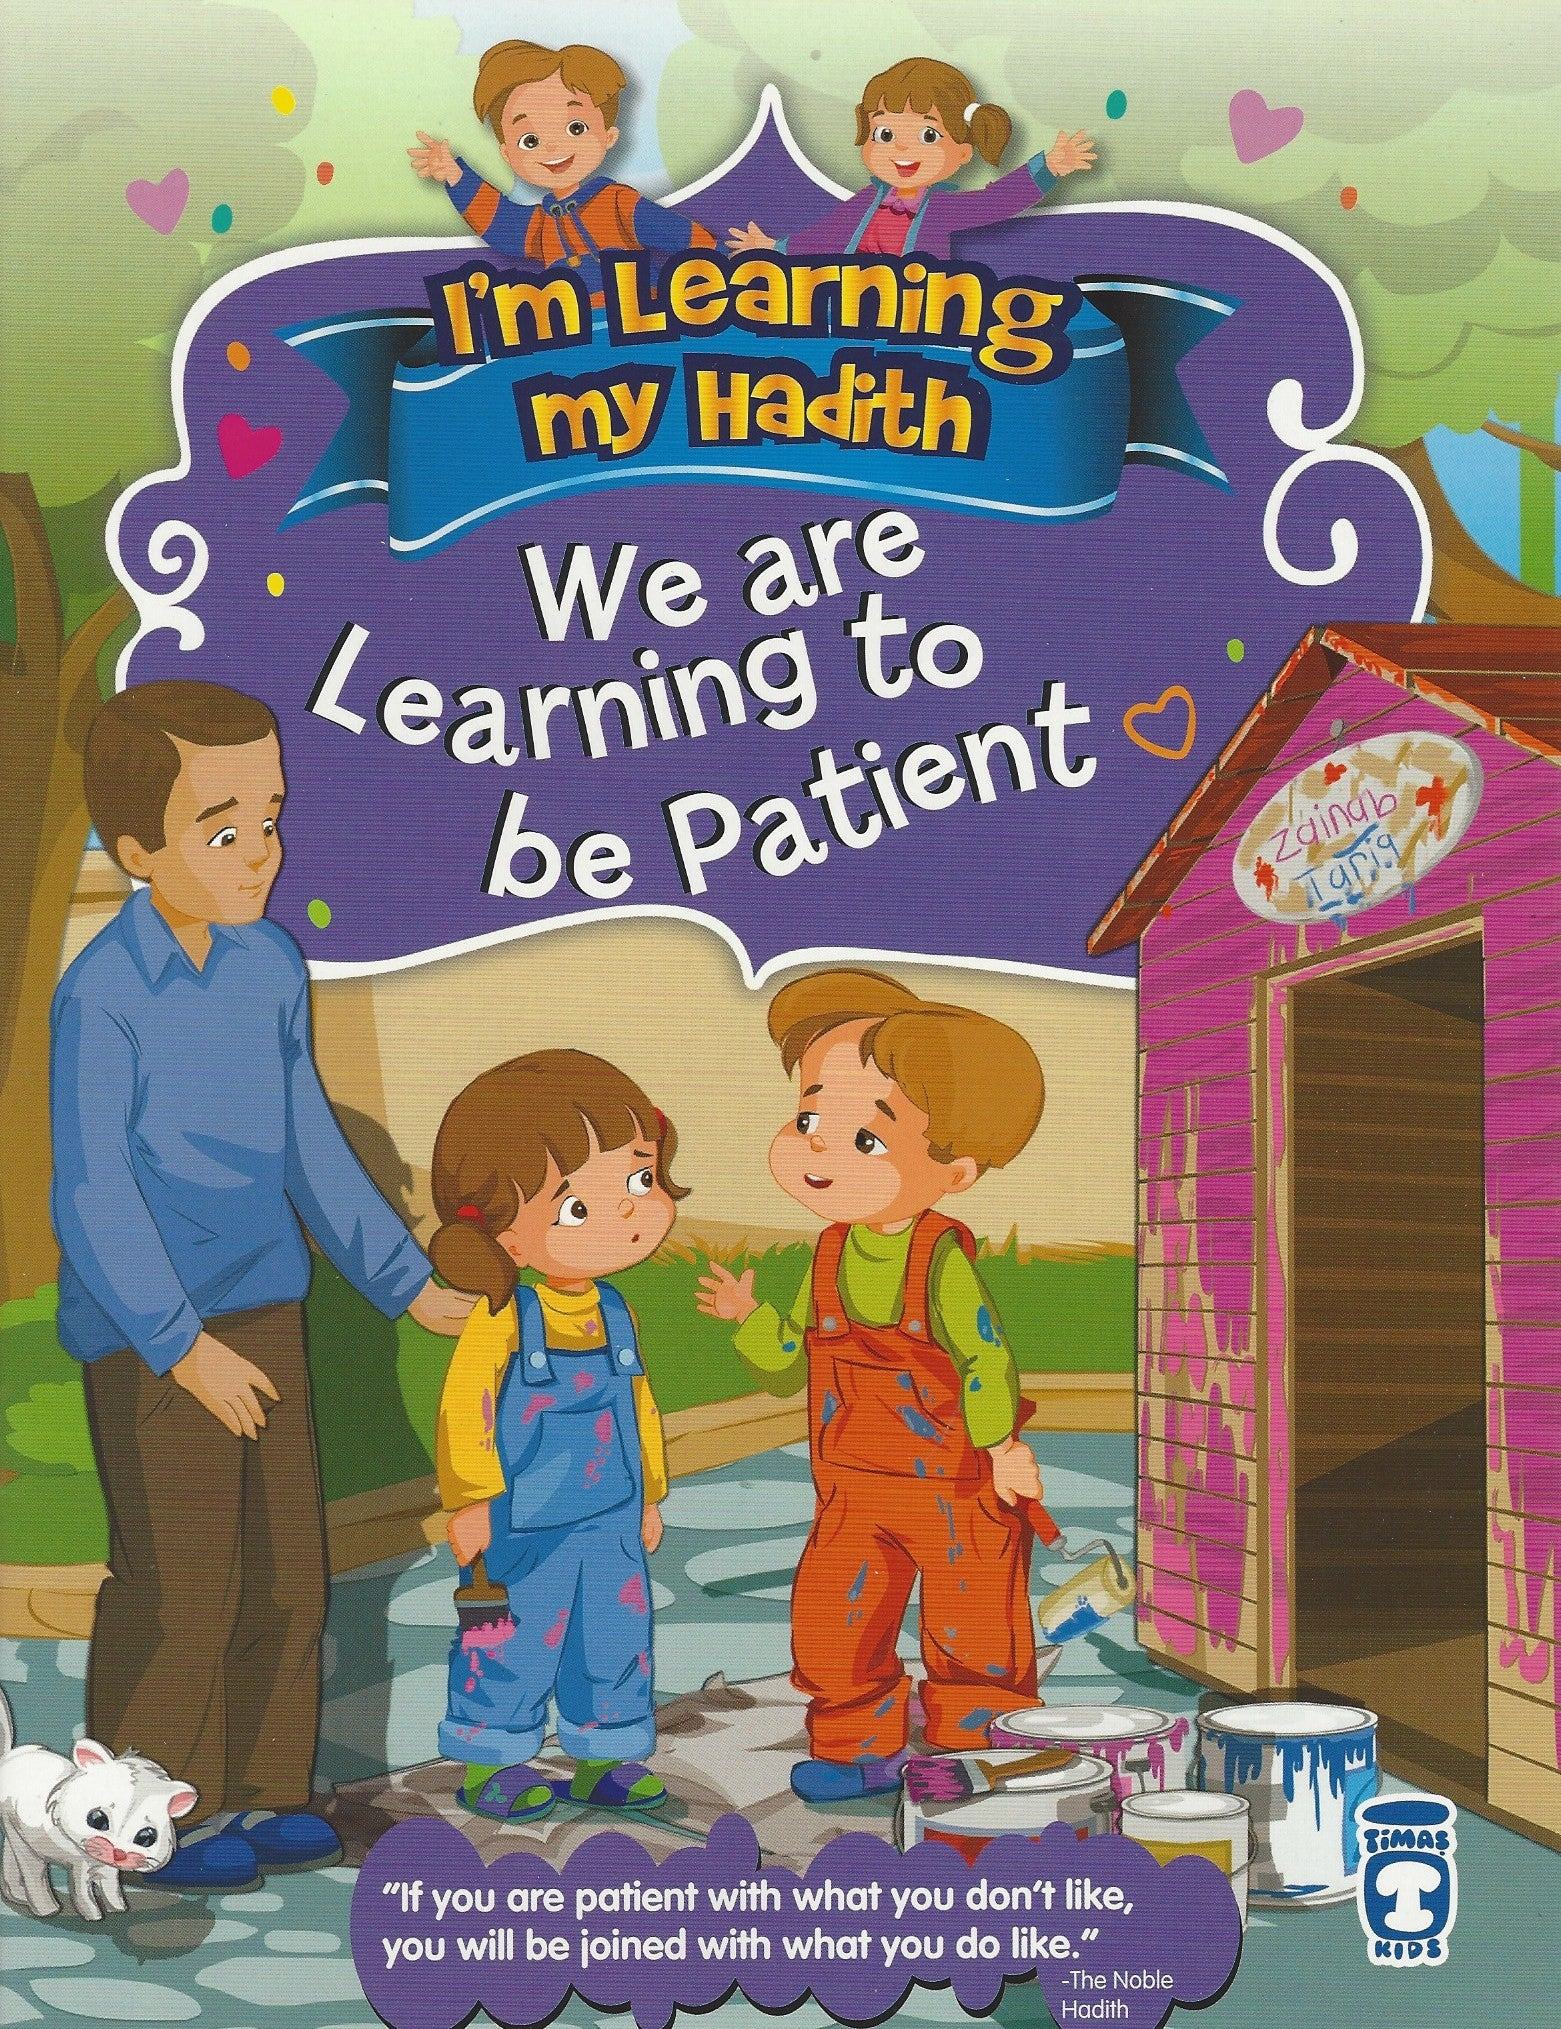 I'm Learning My Hadith (10 volumes) We Are Learning to be Patient, Book - Daybreak International Bookstore, Daybreak Press Global Bookshop  - 7